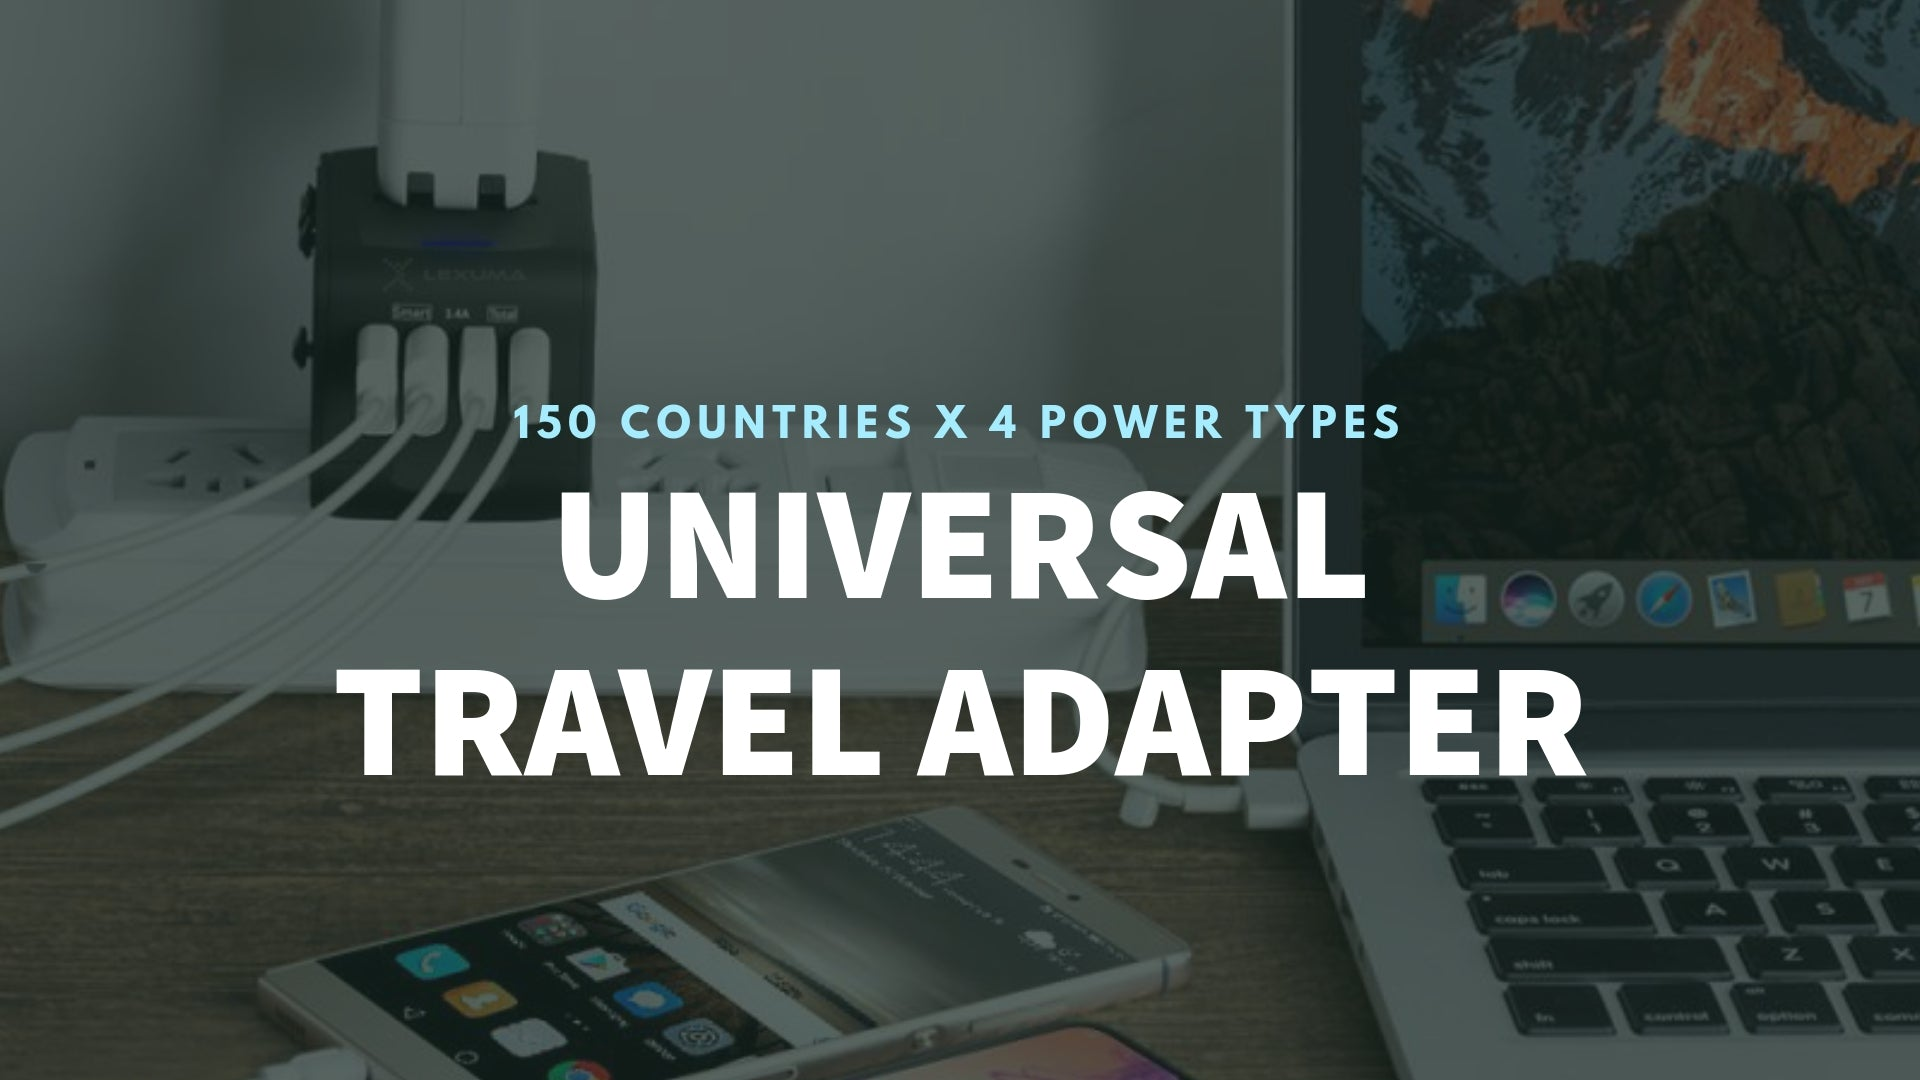 Universal Travel Adapter UTA-1440 All in One Worldwide Charger for US EU UK AUS with 4 USB Port epicka verbatim european outlet momax insignia global kit bez hyleton worldwide targus APK032us eagle creek foval power step down voltage power converter target banner - iMartCity